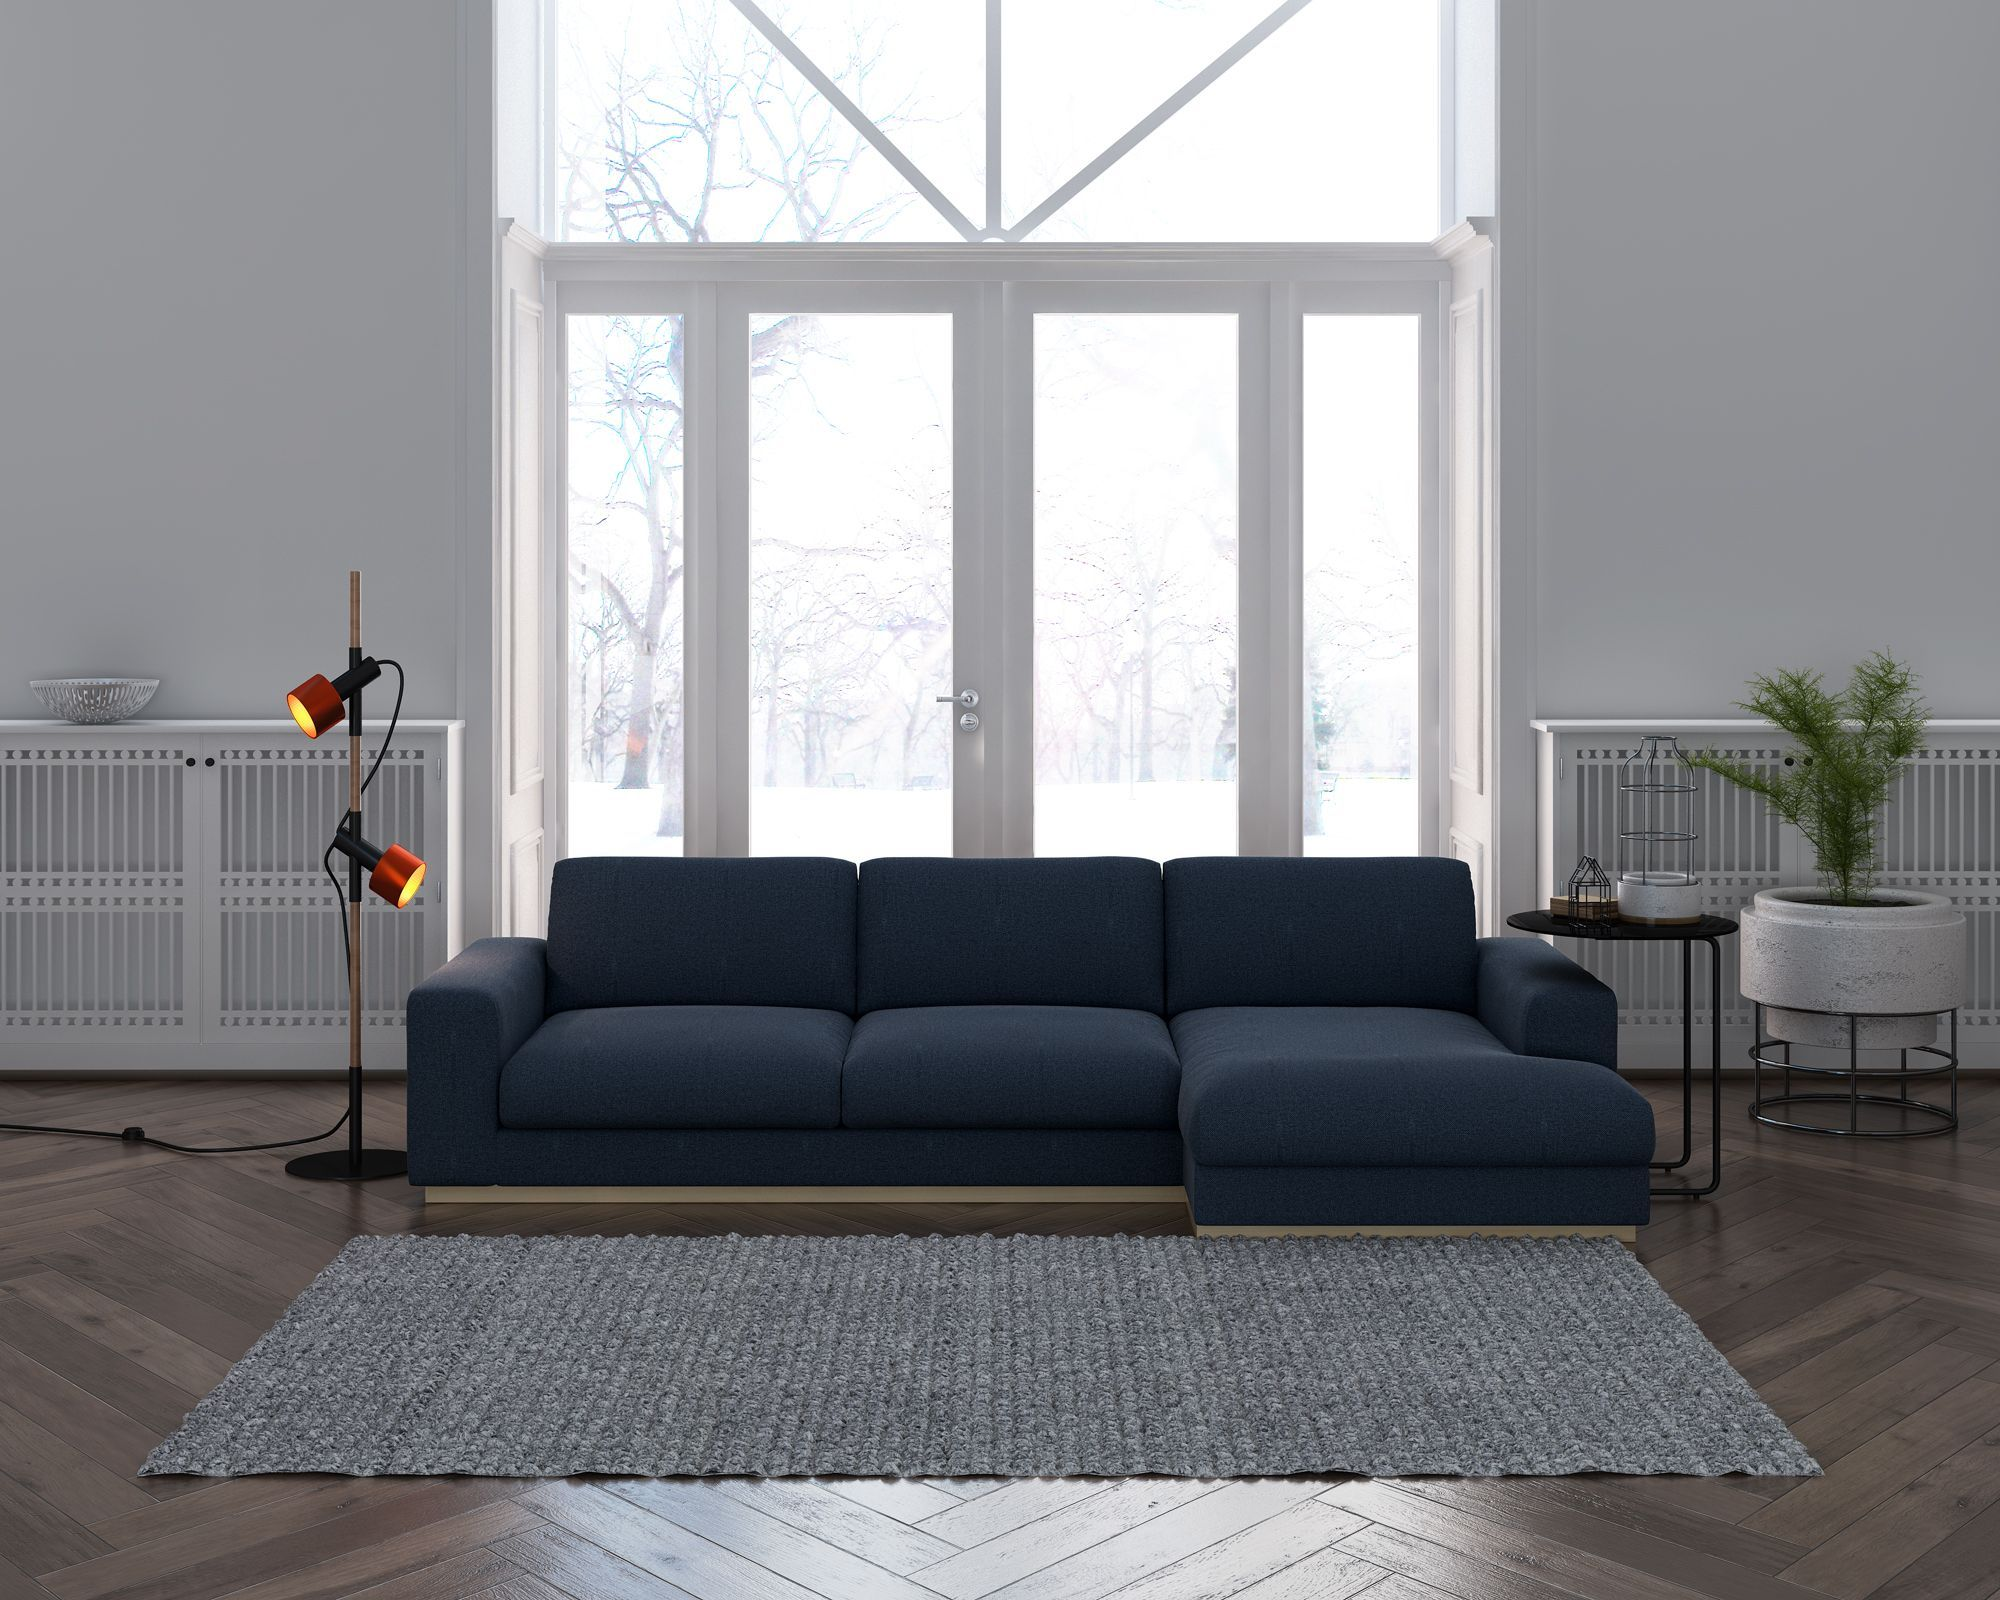 Shop Rove Concepts For Everything Mid Century And Modern, From Furniture  And Lighting To Accents, Decor And More.